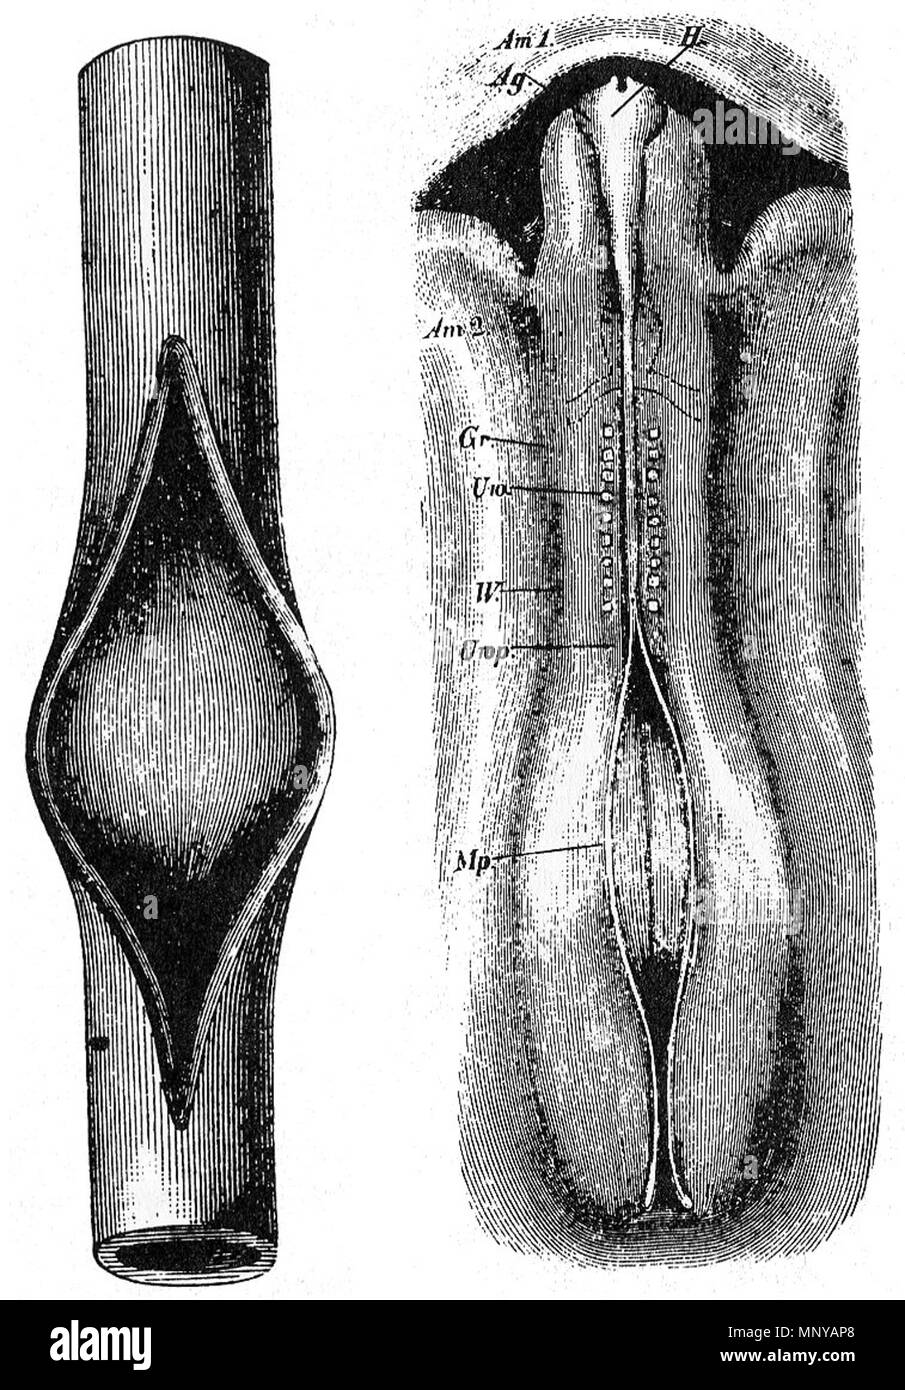 . English: Wilhelm His drawing of chick embryo compared to slit rubber tube, 1874 . 1874. Wilhelm His, Sr (1831–1904) 1259 Wilhelm His chick embryo compared to slit rubber tube - Stock Image